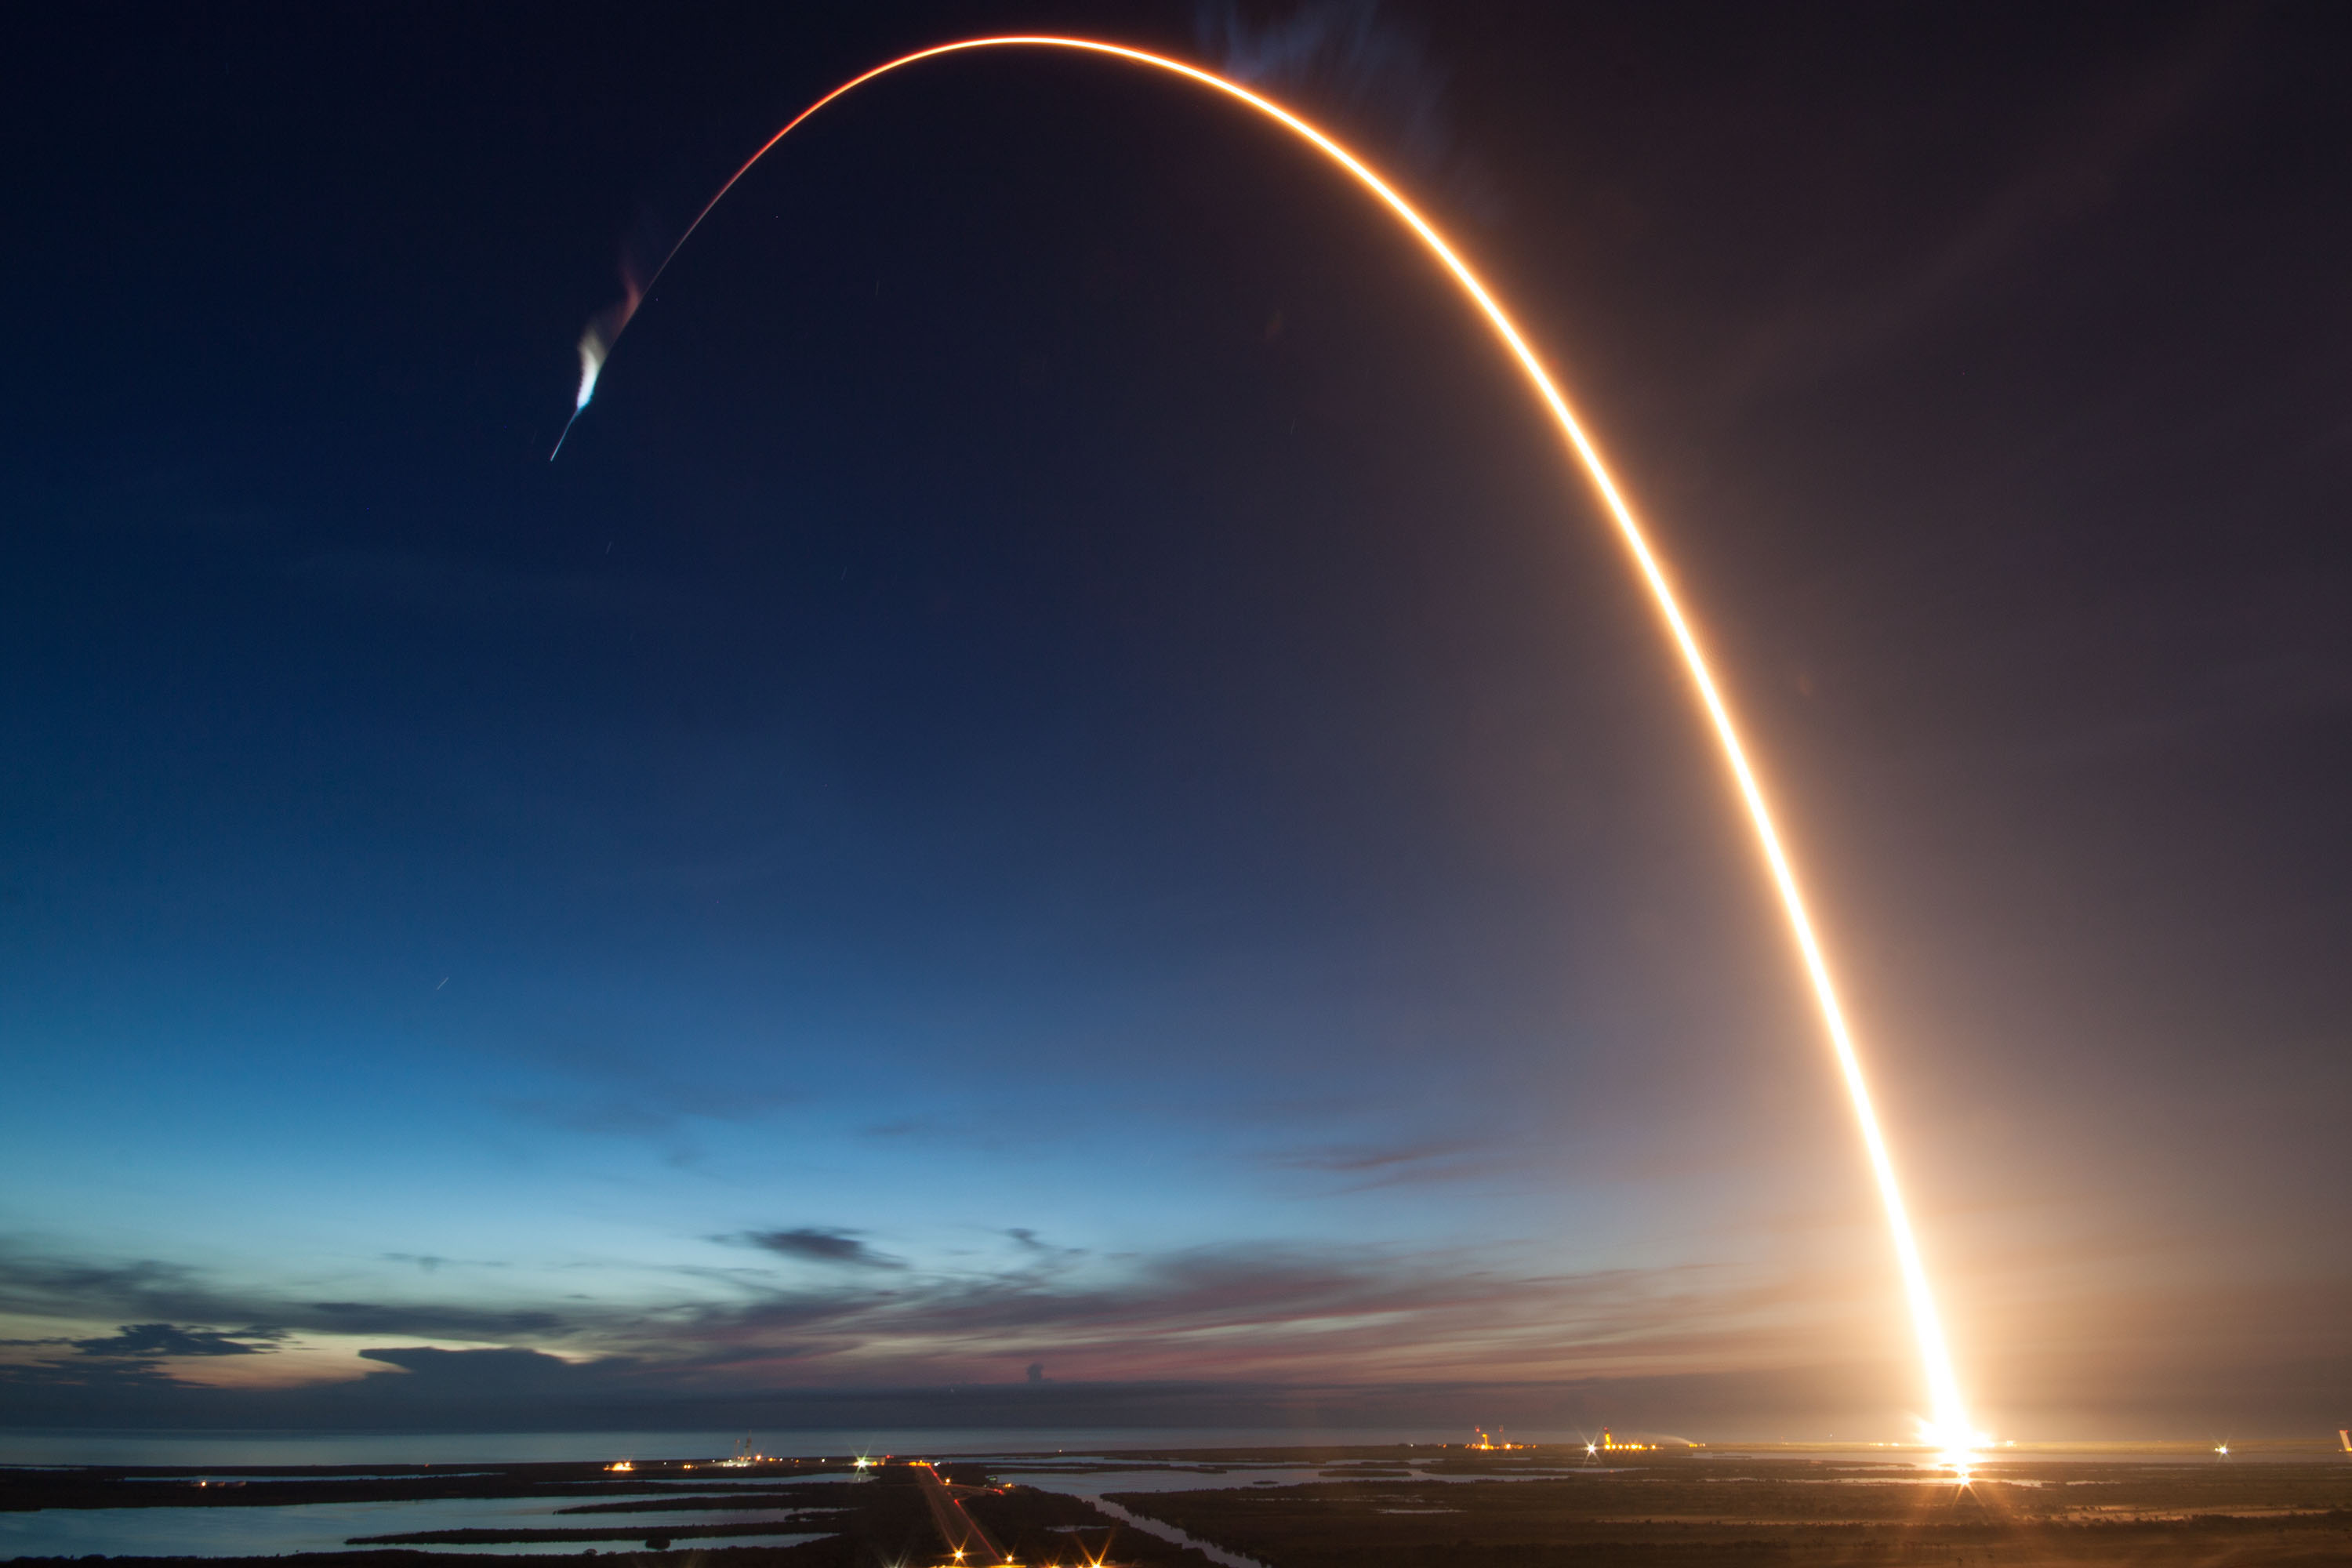 SpaceX Dragon launch by Falcon 9